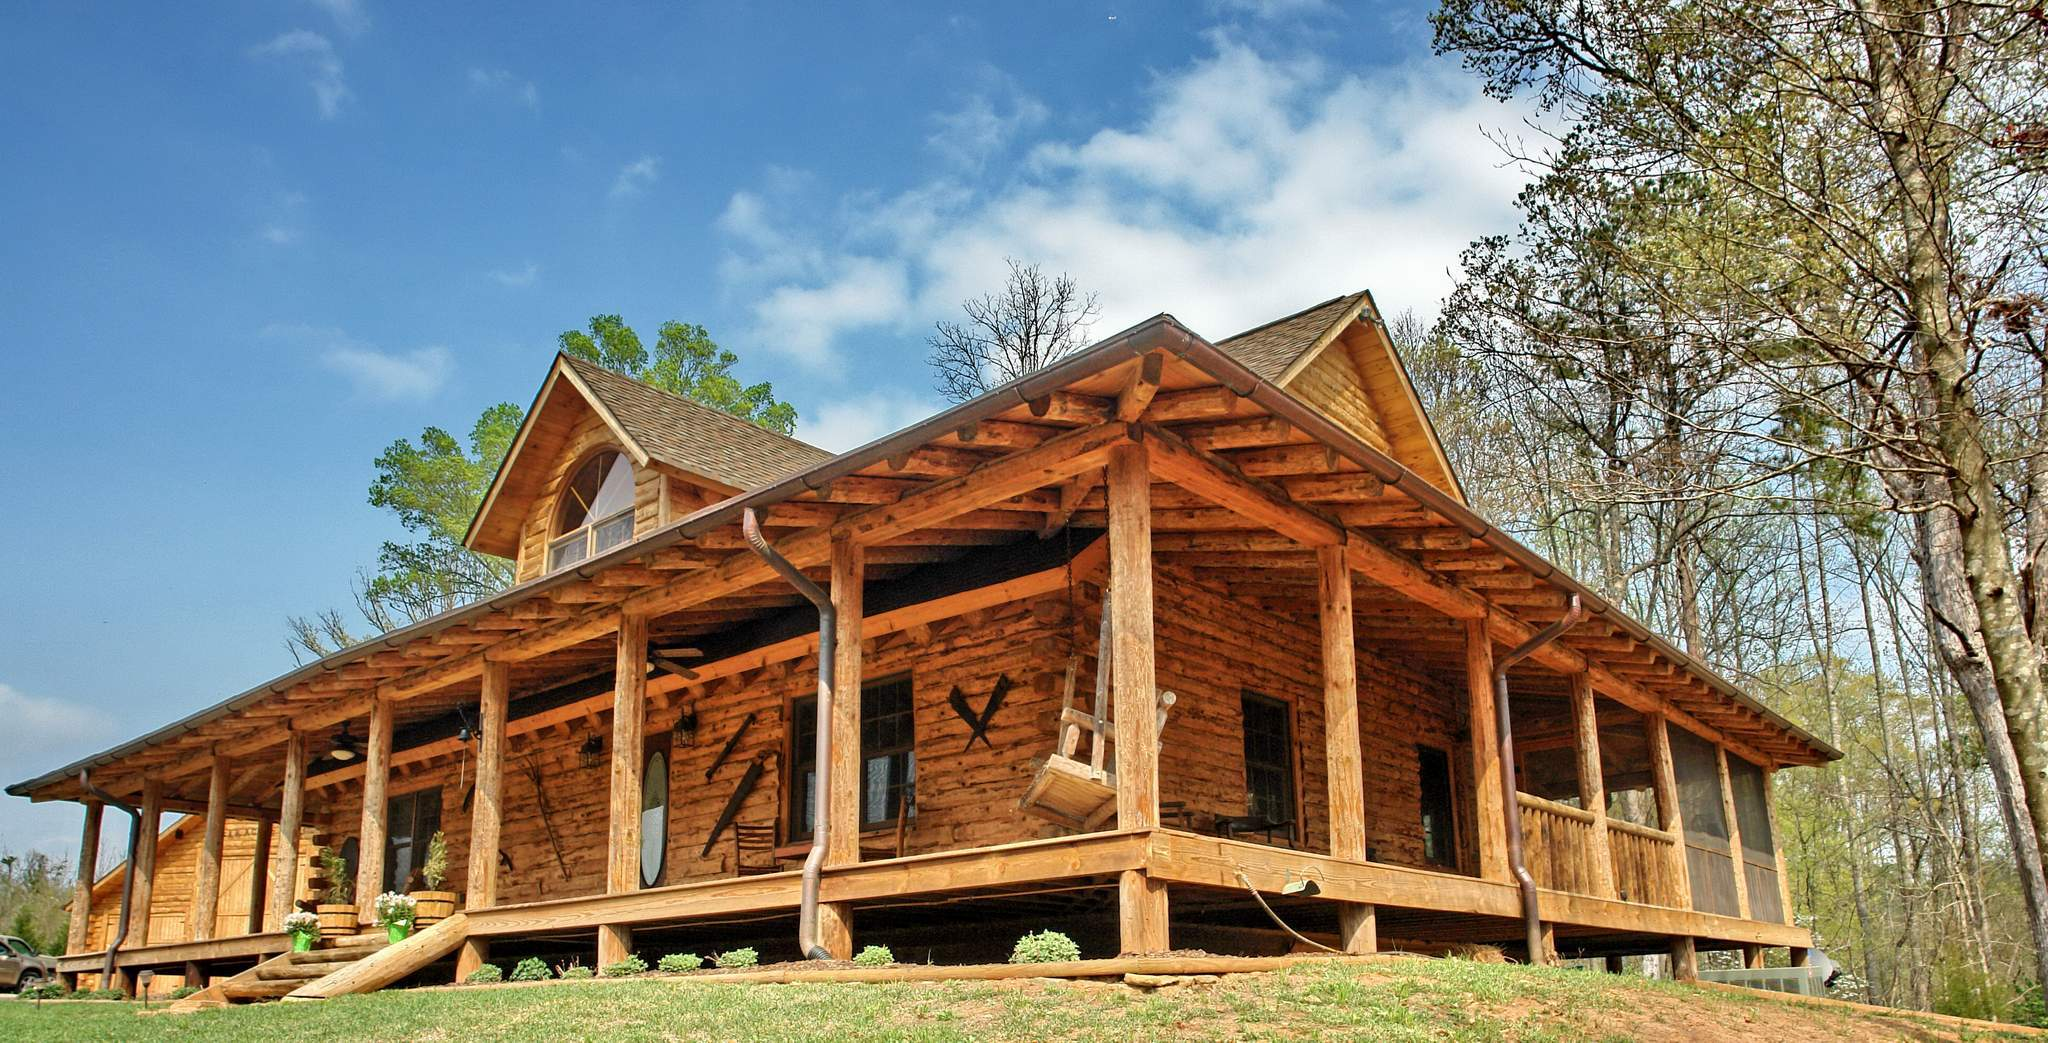 Model Home Country Rustic Dream Home: country log home